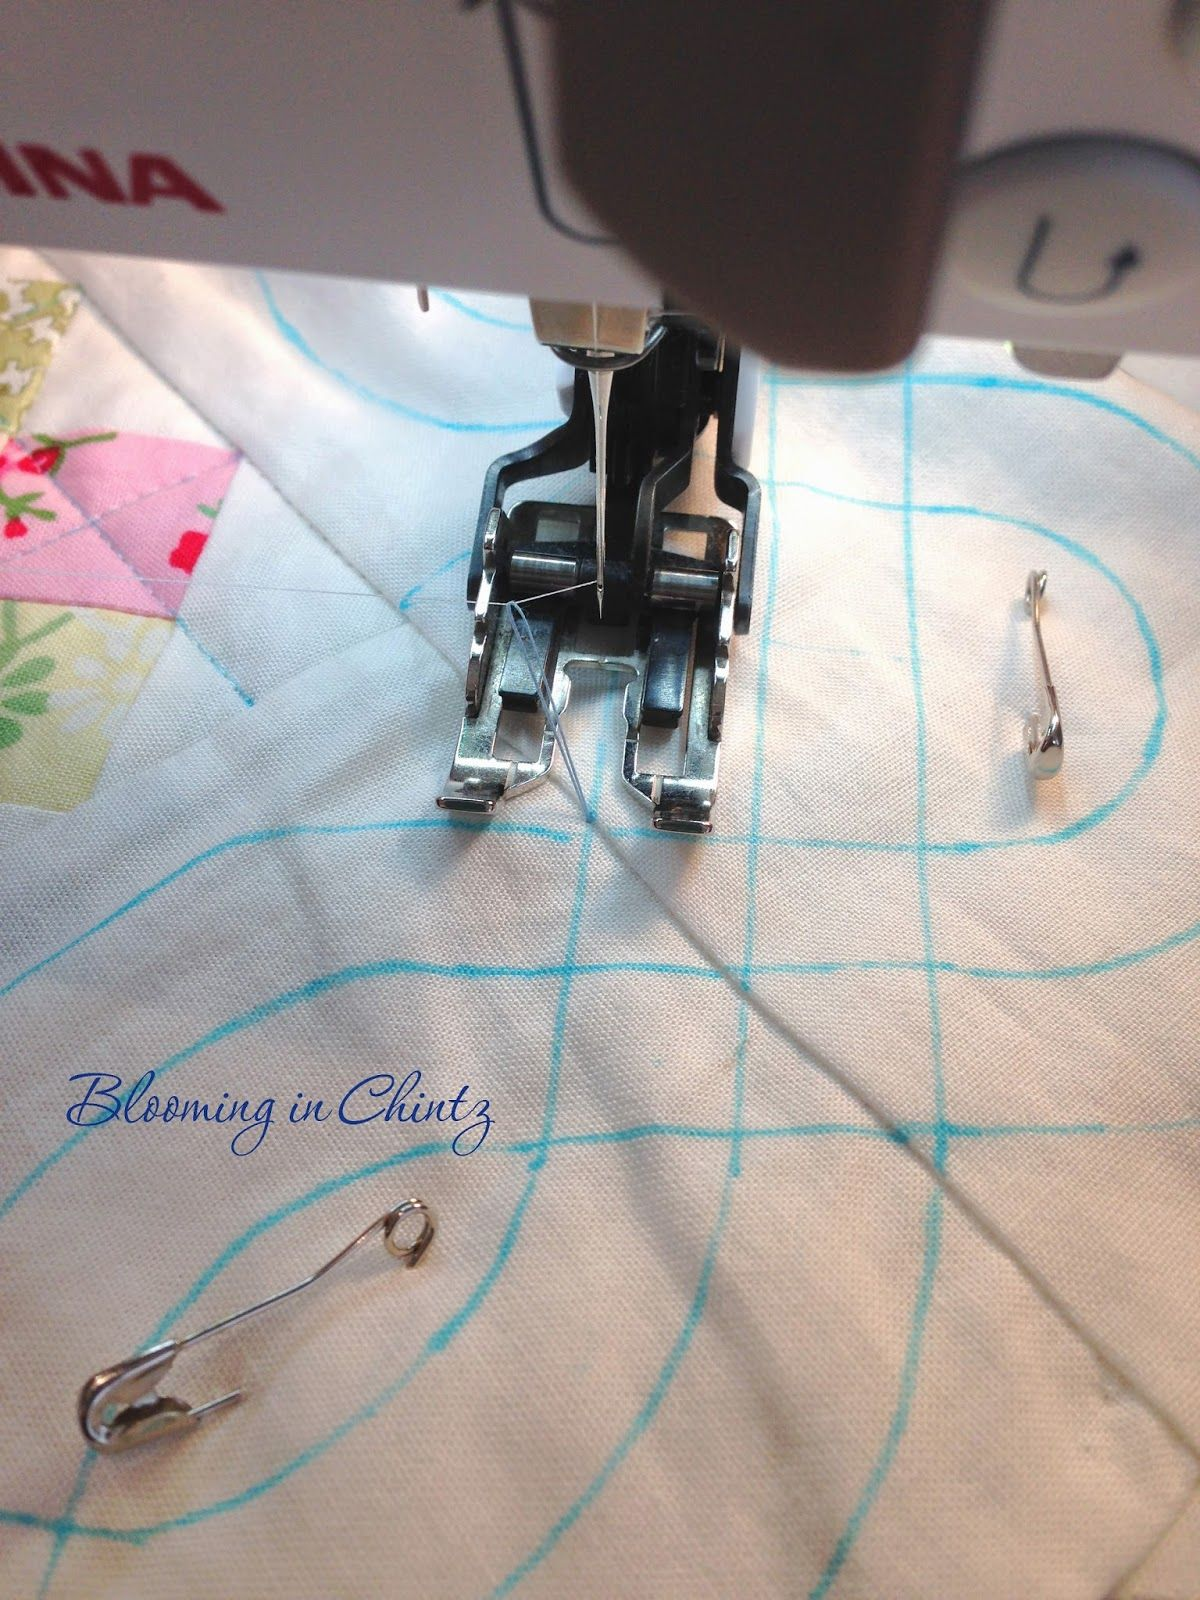 """bloominginchintz.blogspot.com  How to quilt cables by """"walking foot"""".  She also has some interesting thoughts and hints on washing the quilt prior to putting the binding on it.  Never thought of that before!"""